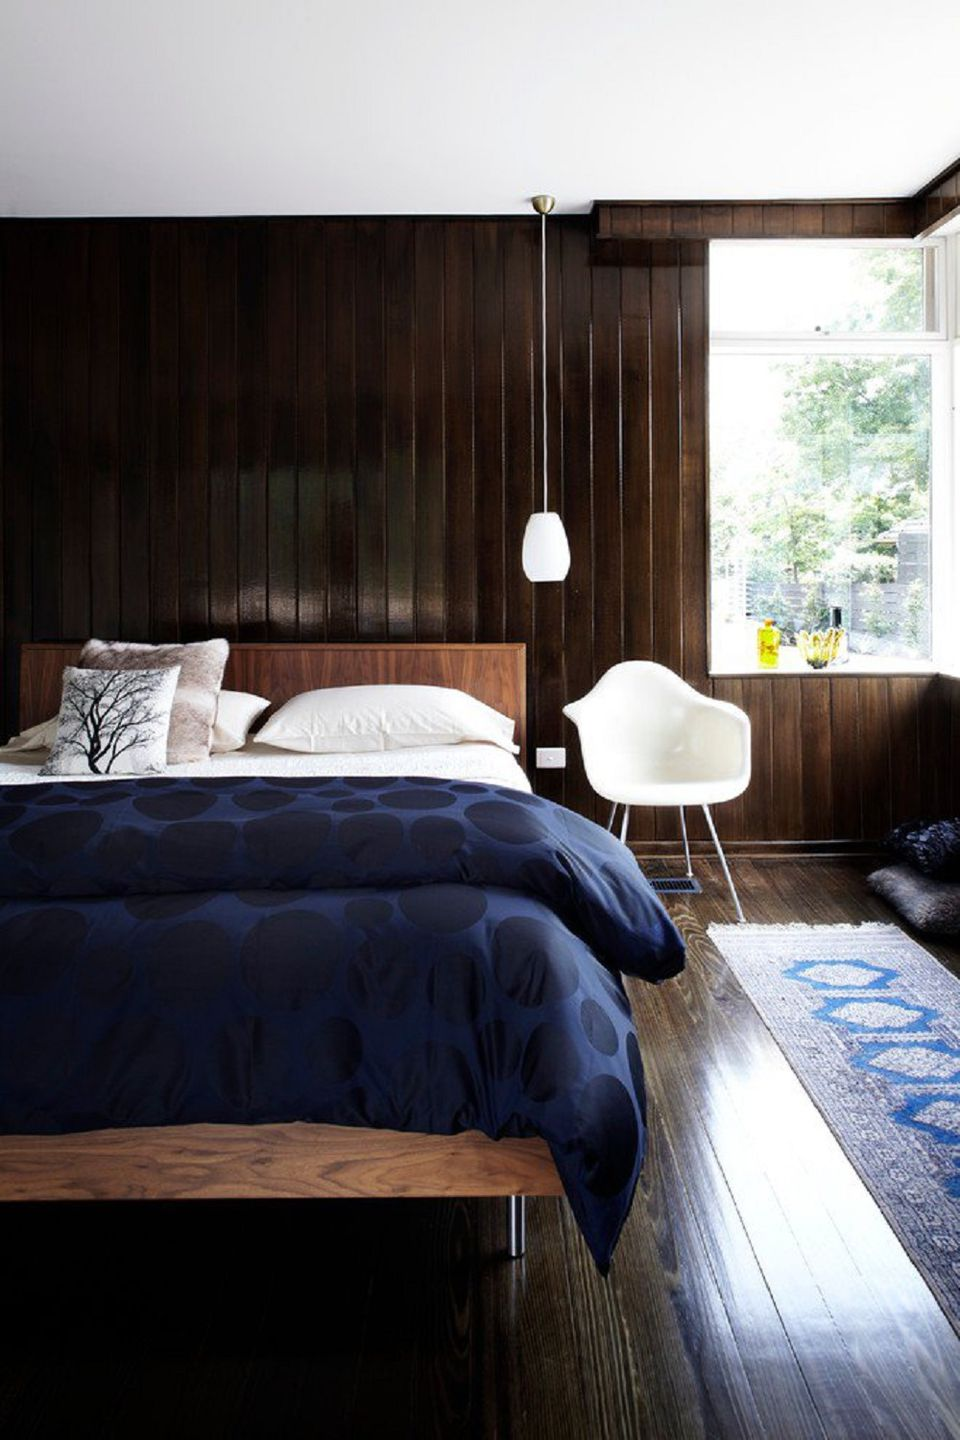 renovation century lover bright home design designs midcentury modern bedroom addition horse mid